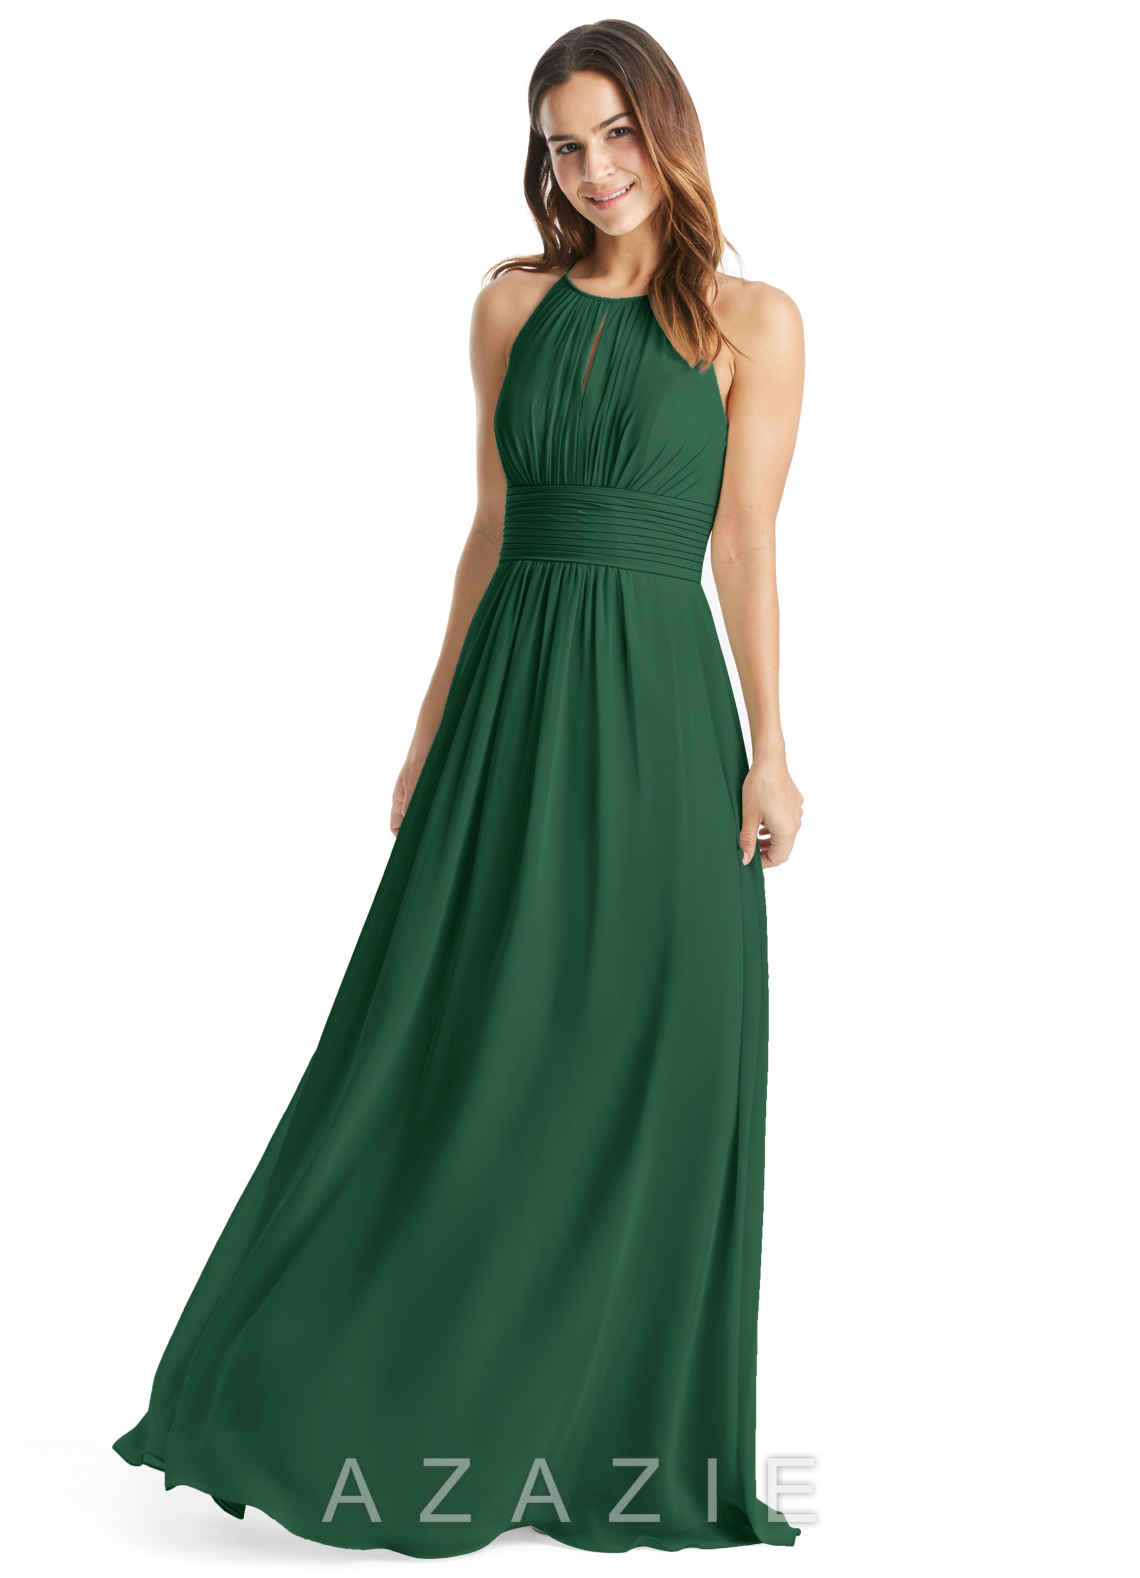 Azazie bonnie bridesmaid dress azazie color dark green ombrellifo Choice Image